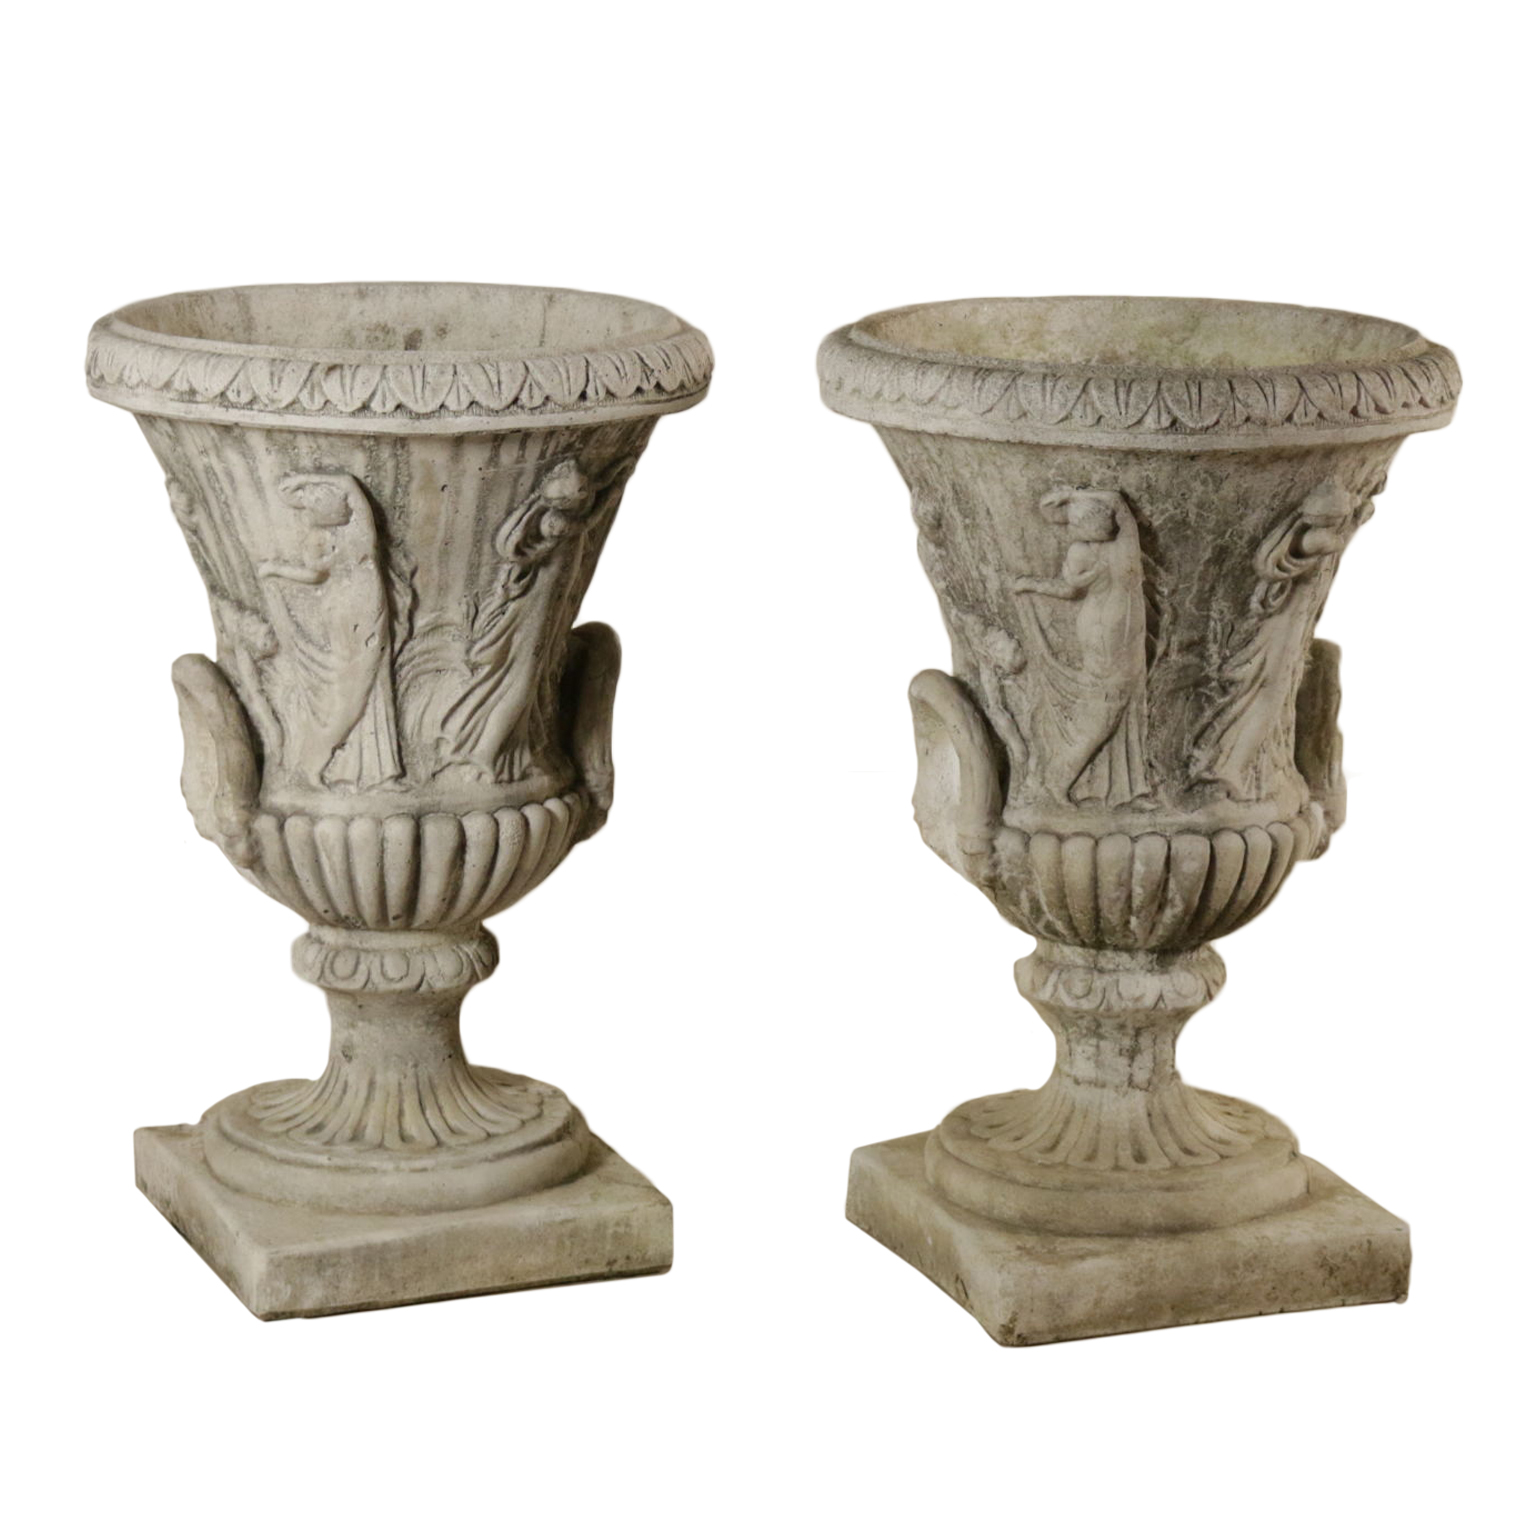 Vasi Per Giardino.Pair Of Garden Vases Manufactured In Italy Second Half Of